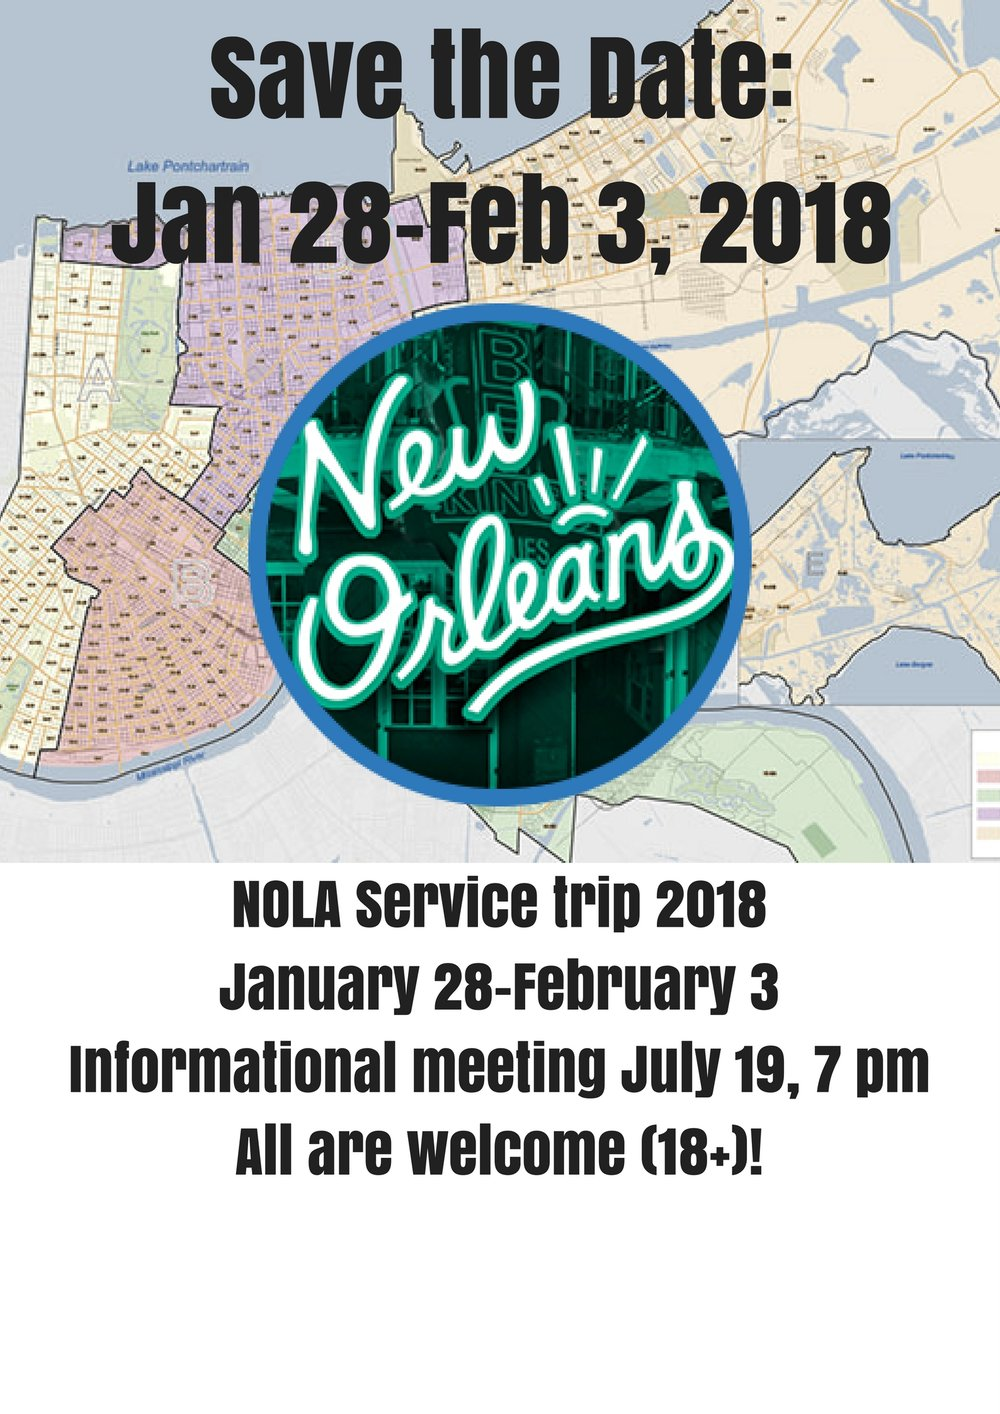 New orleans dating service